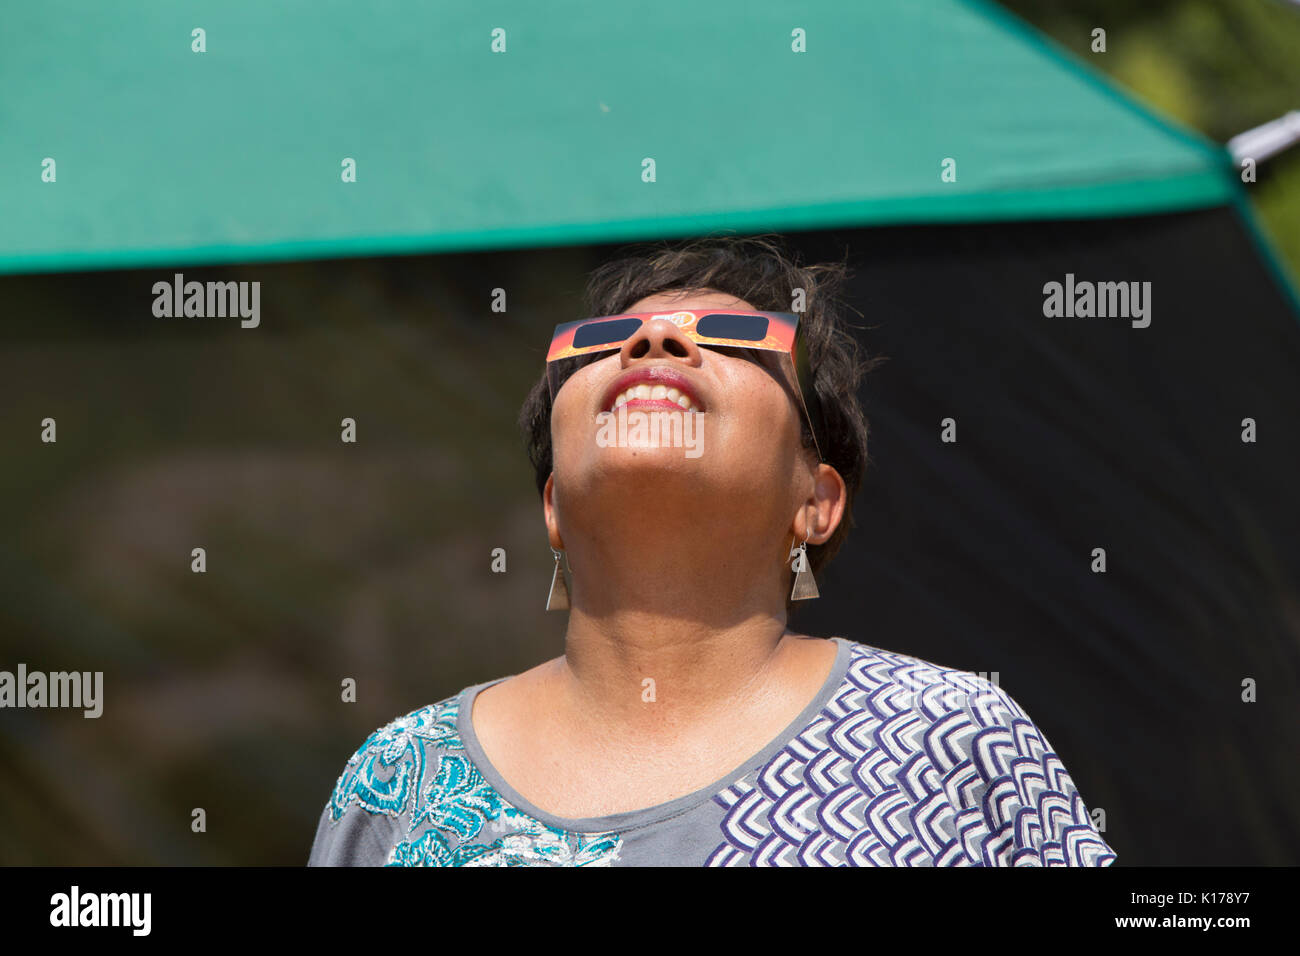 A woman wearing eclipse glasses observes the Great American Eclipse on August 21, 2017. - Stock Image